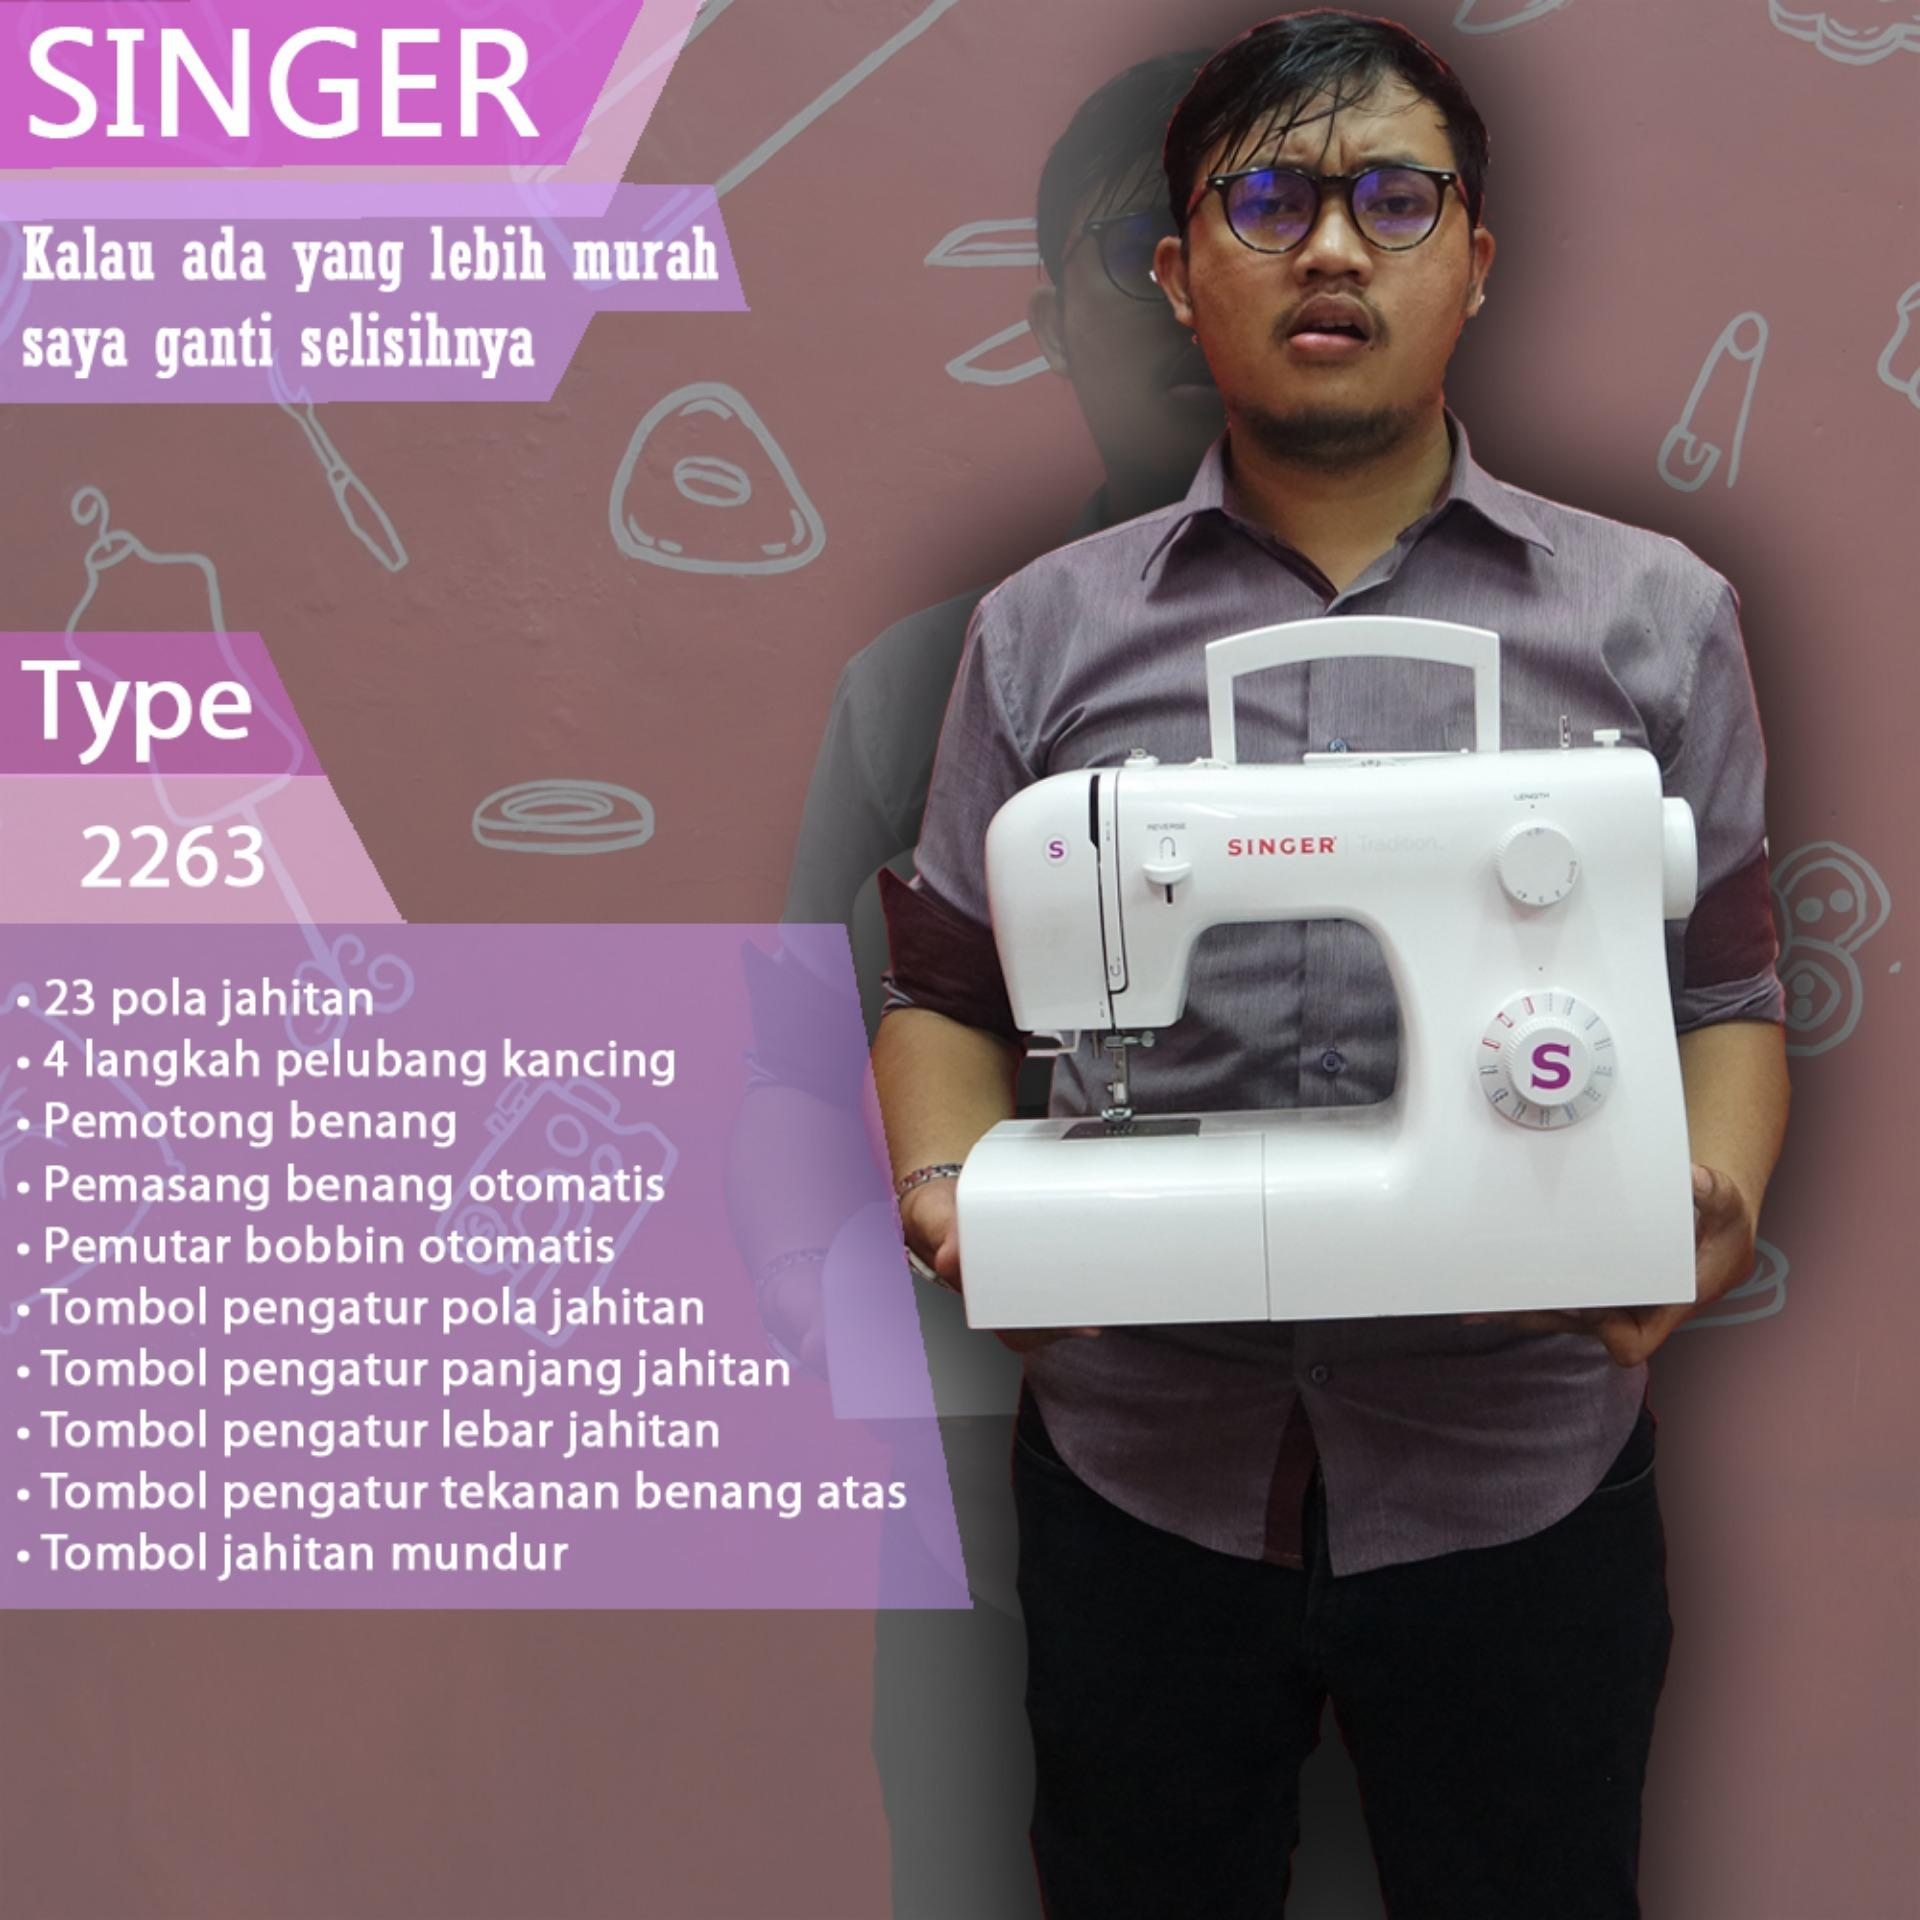 Mesin jahit portable multifungsi SINGER Tradition 2263